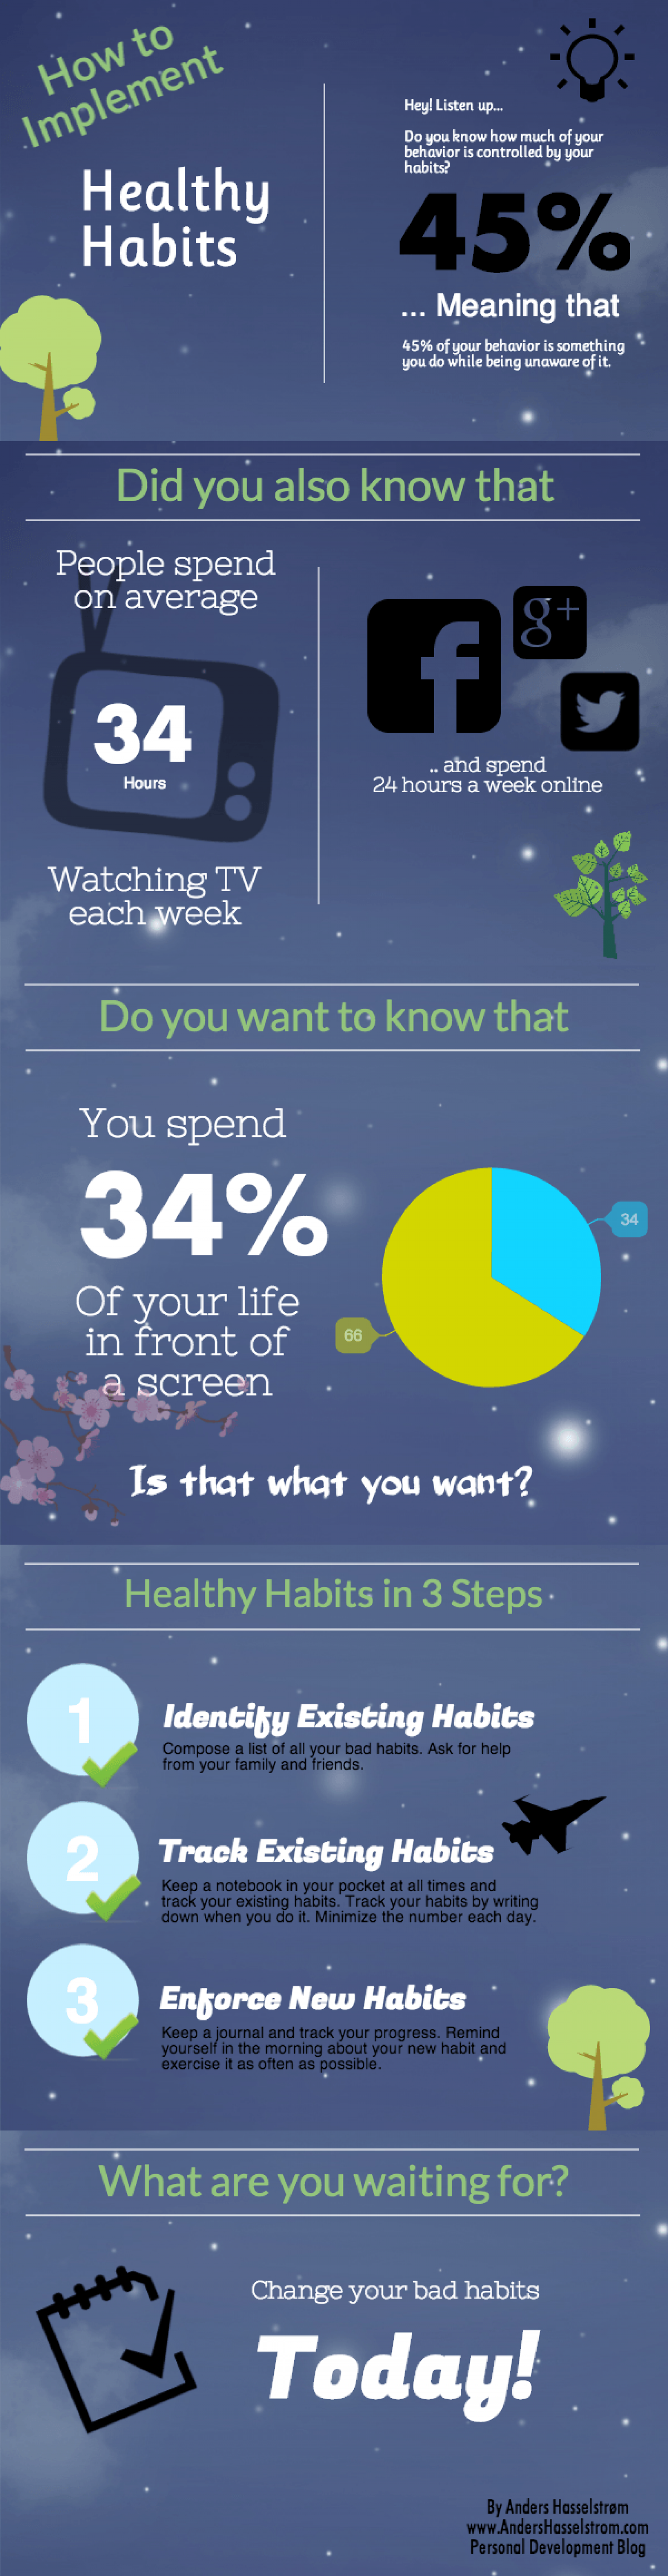 How to Implement Healthy Habits Infographic